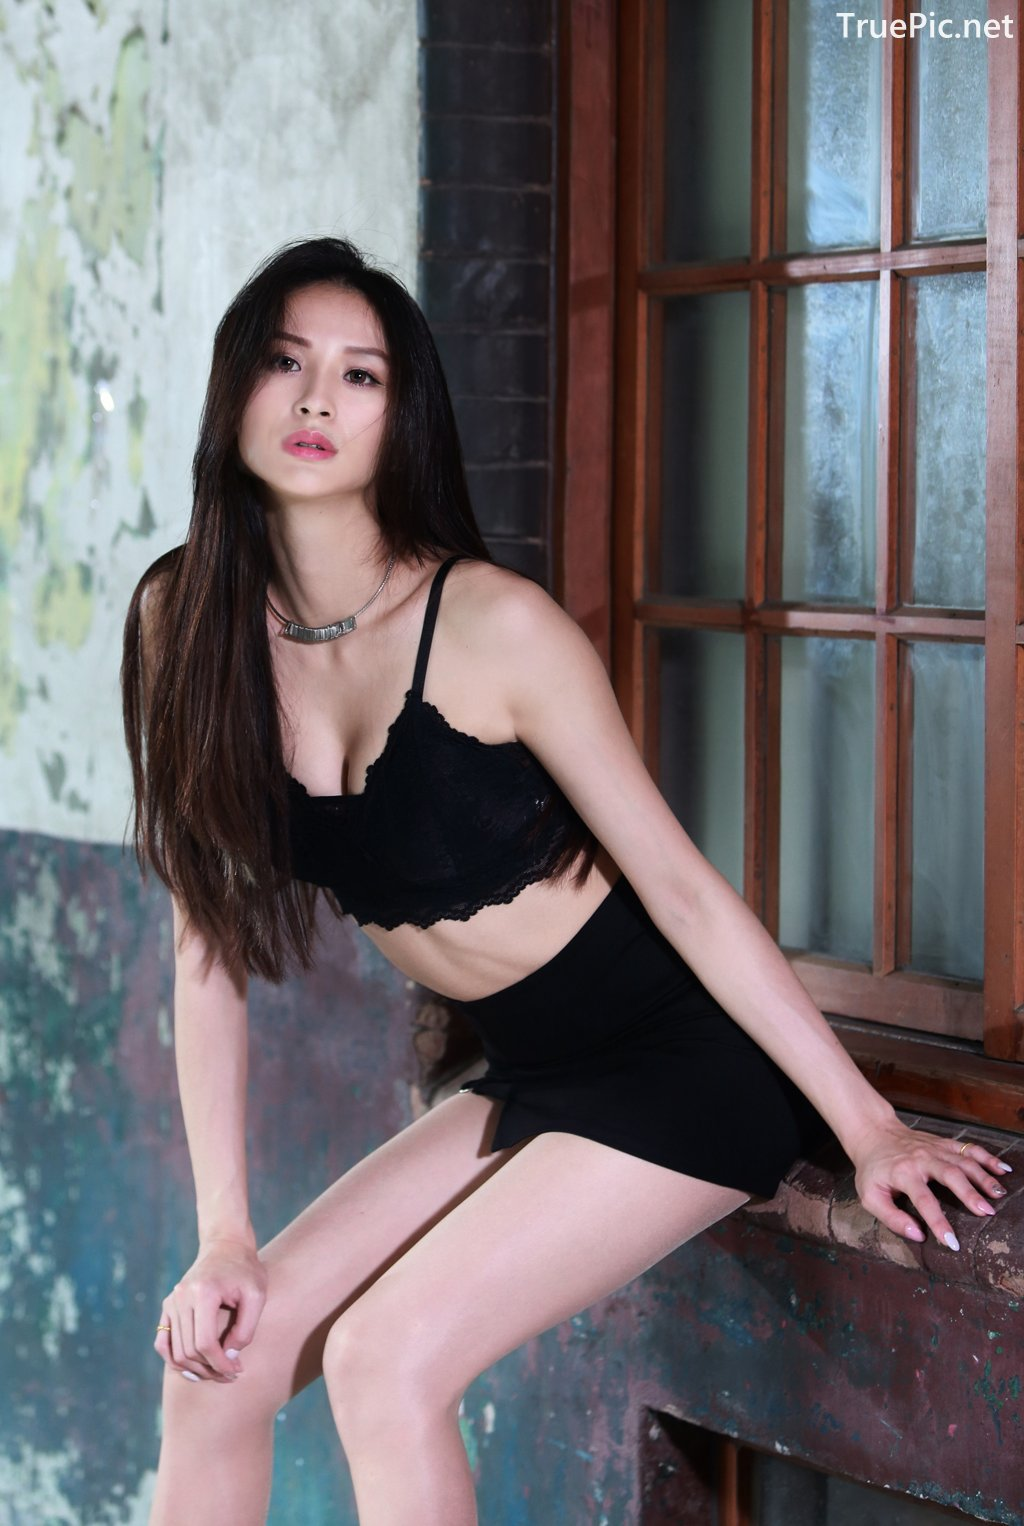 Image-Taiwanese-Beautiful-Long-Legs-Girl-雪岑Lola-Black-Sexy-Short-Pants-and-Crop-Top-Outfit-TruePic.net- Picture-35